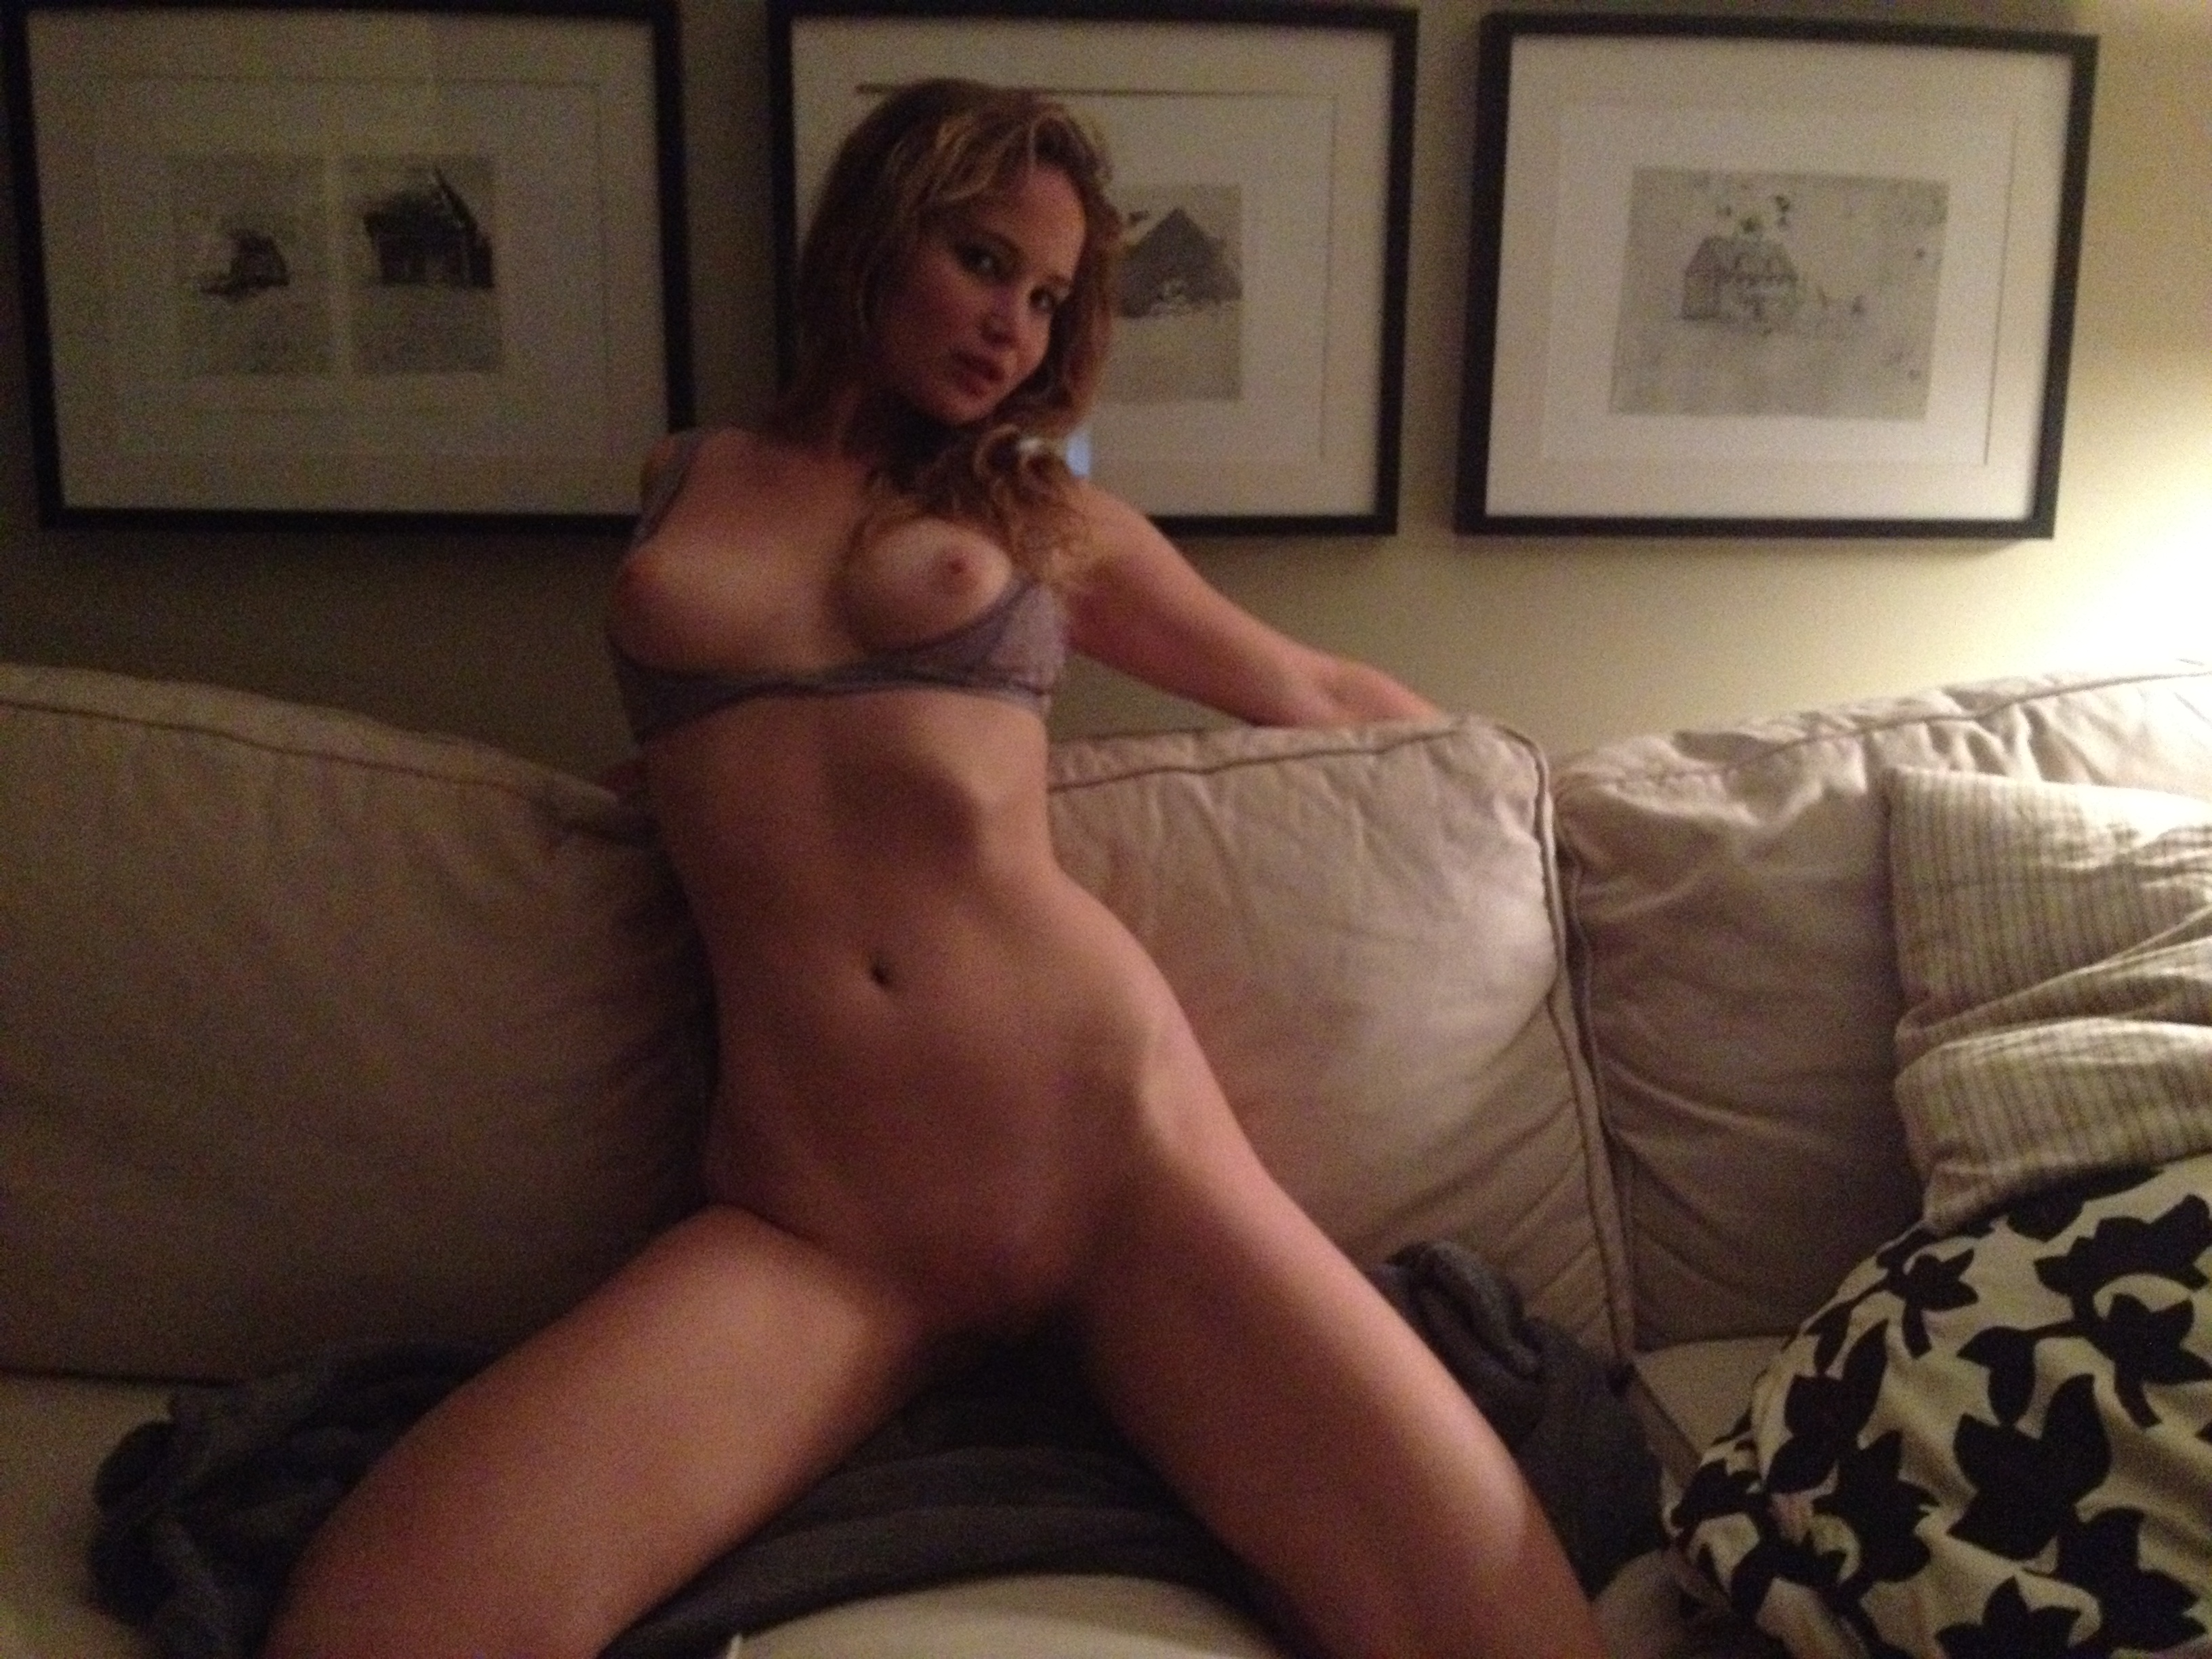 Jeniffer williams naked pics acter sex